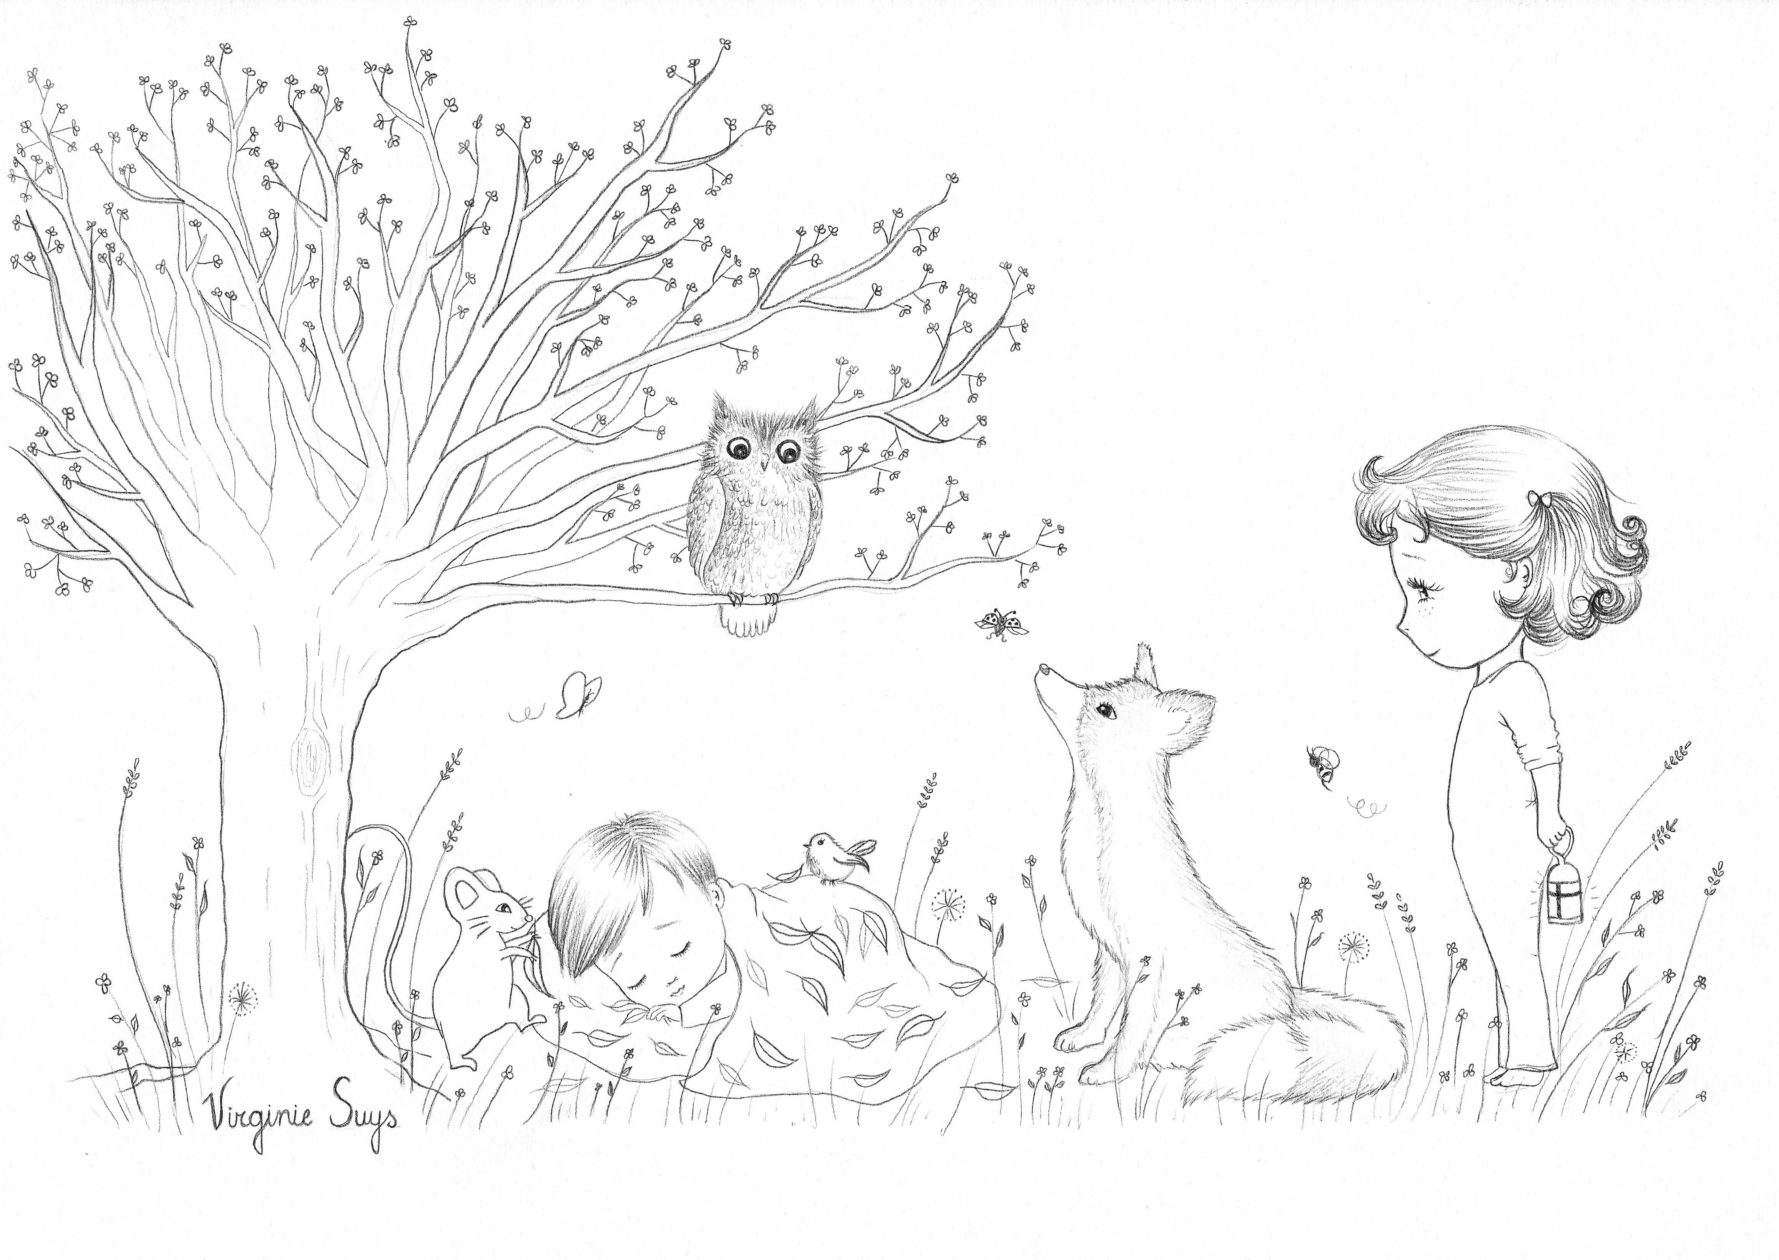 Virginie Suys Dreams in the forest in black & white illustration